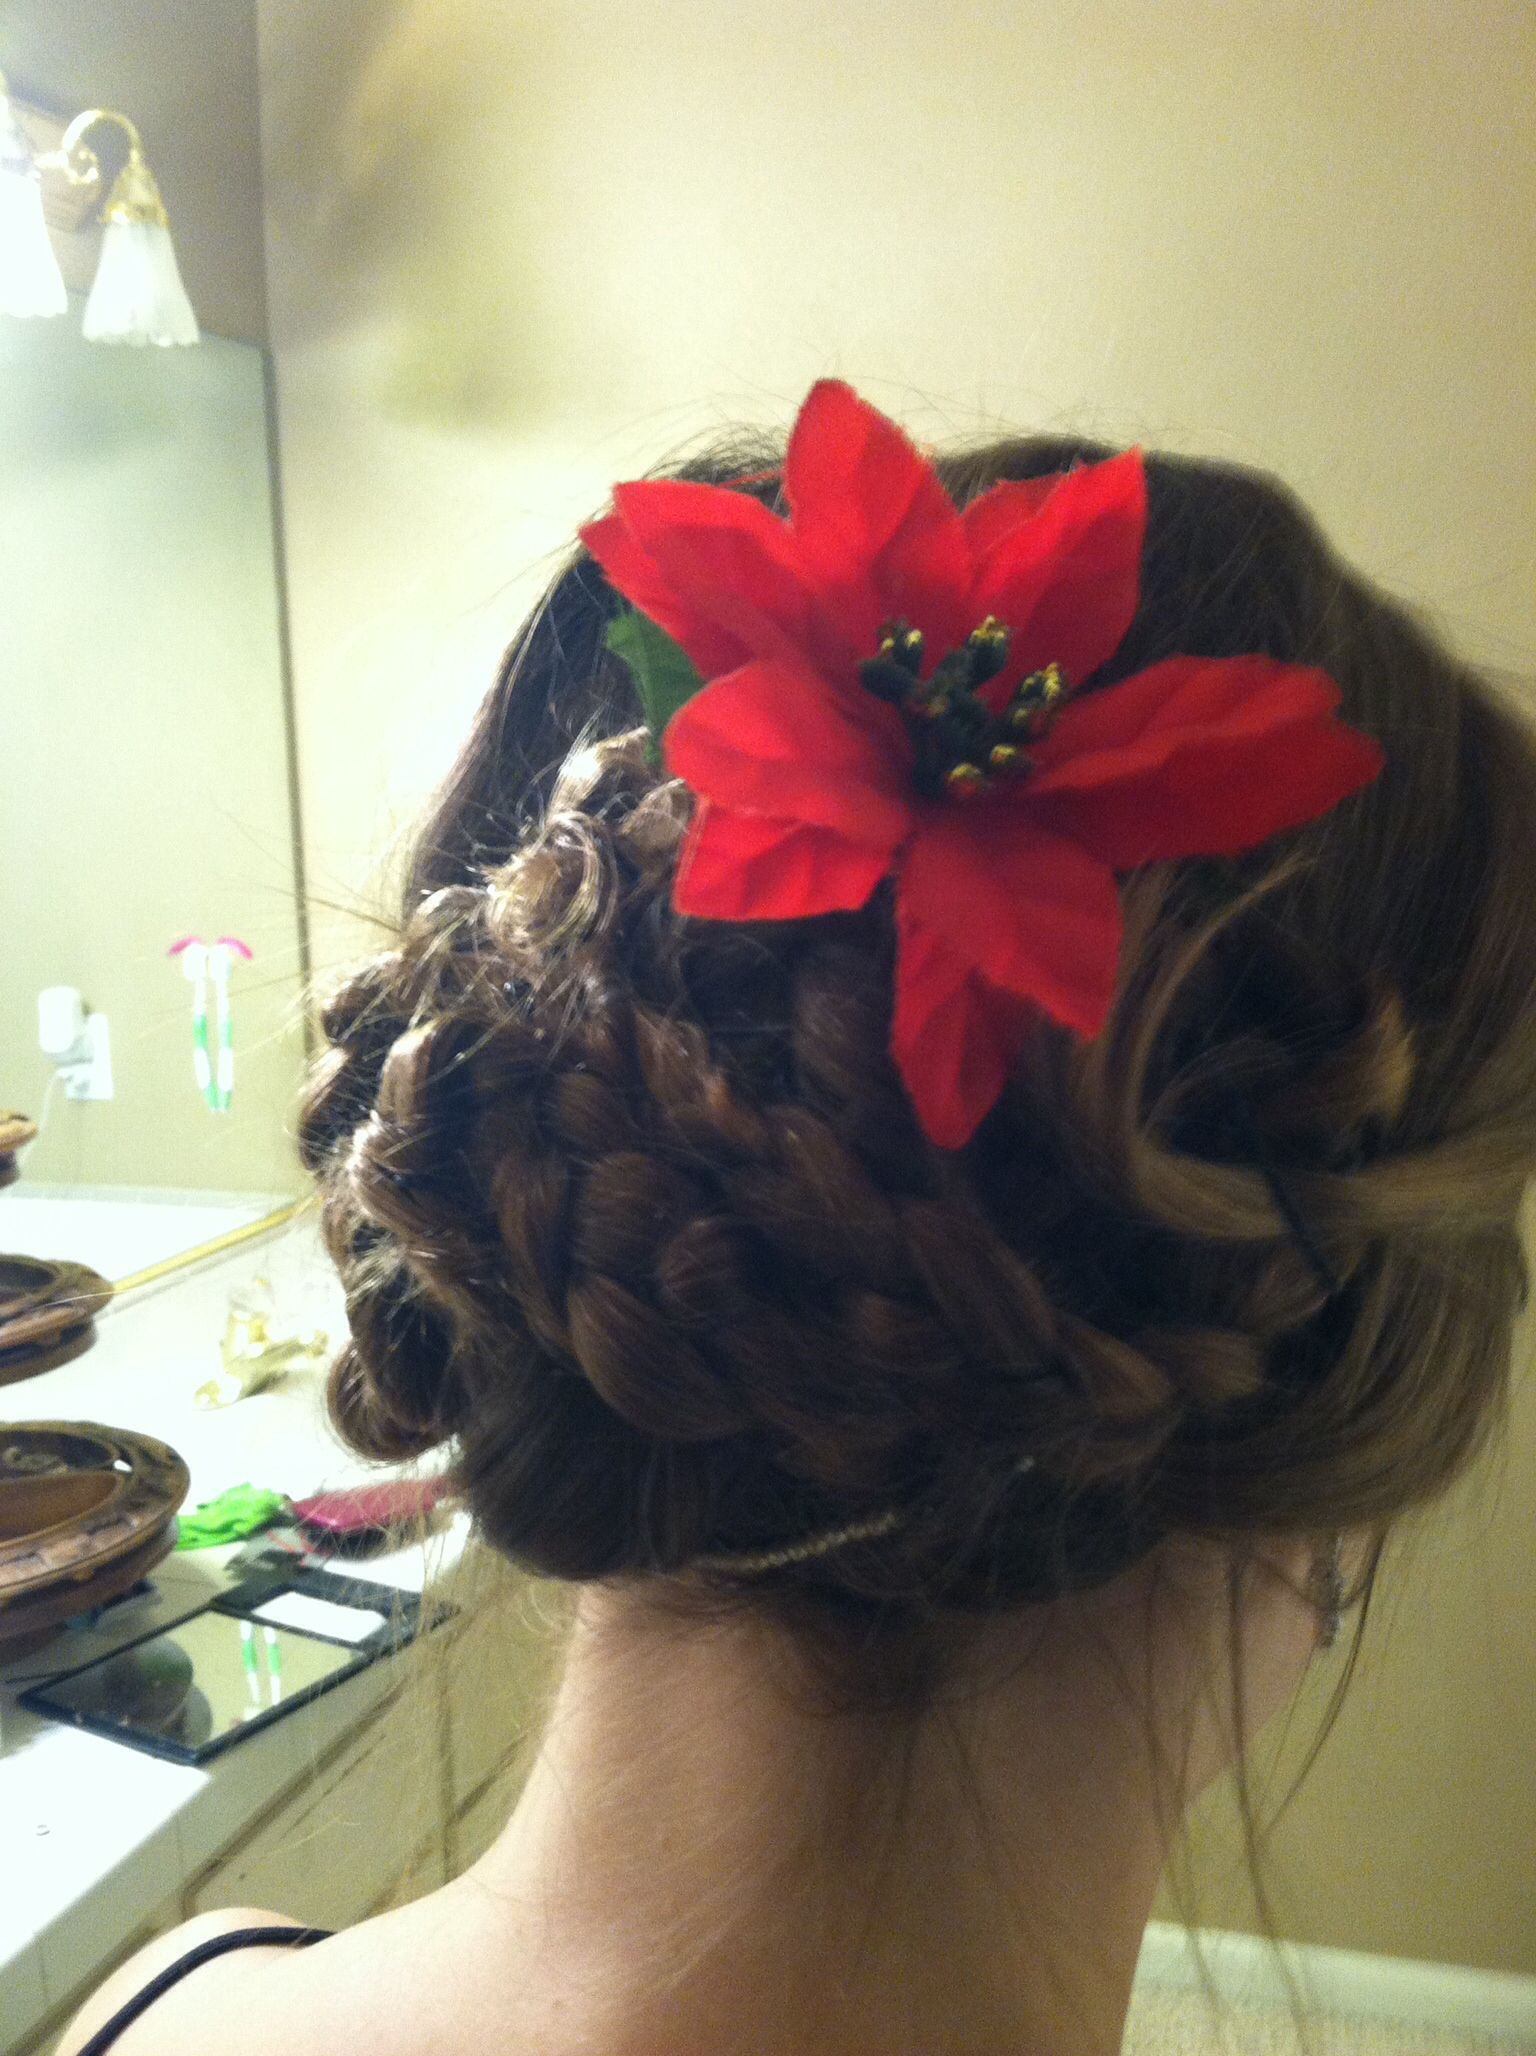 This was supper easy cute hairstyles pinterest